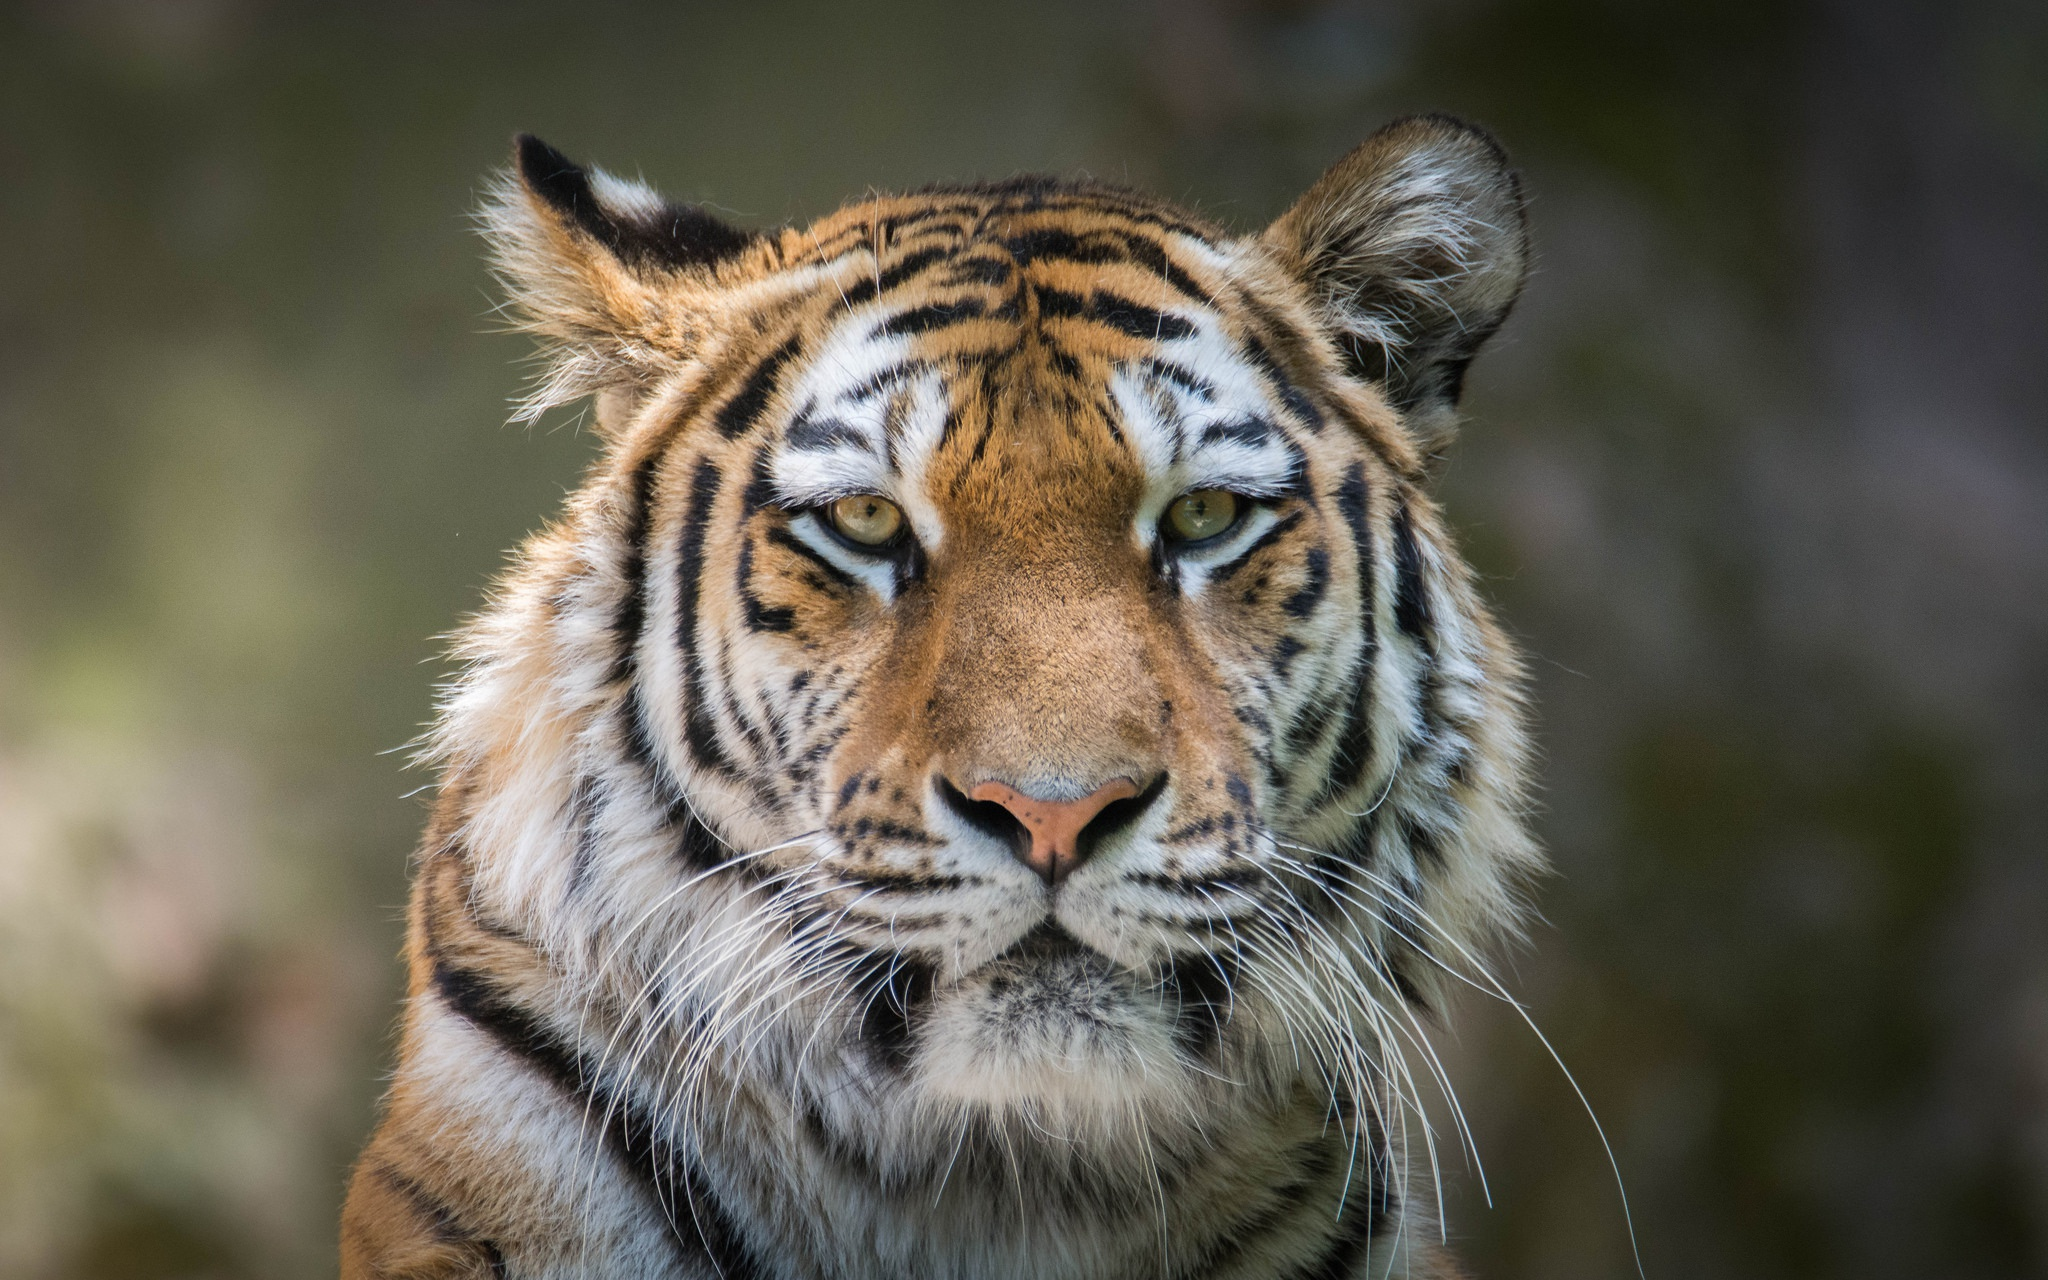 640x960 tiger 4k hd iphone 4, iphone 4s hd 4k wallpapers, images